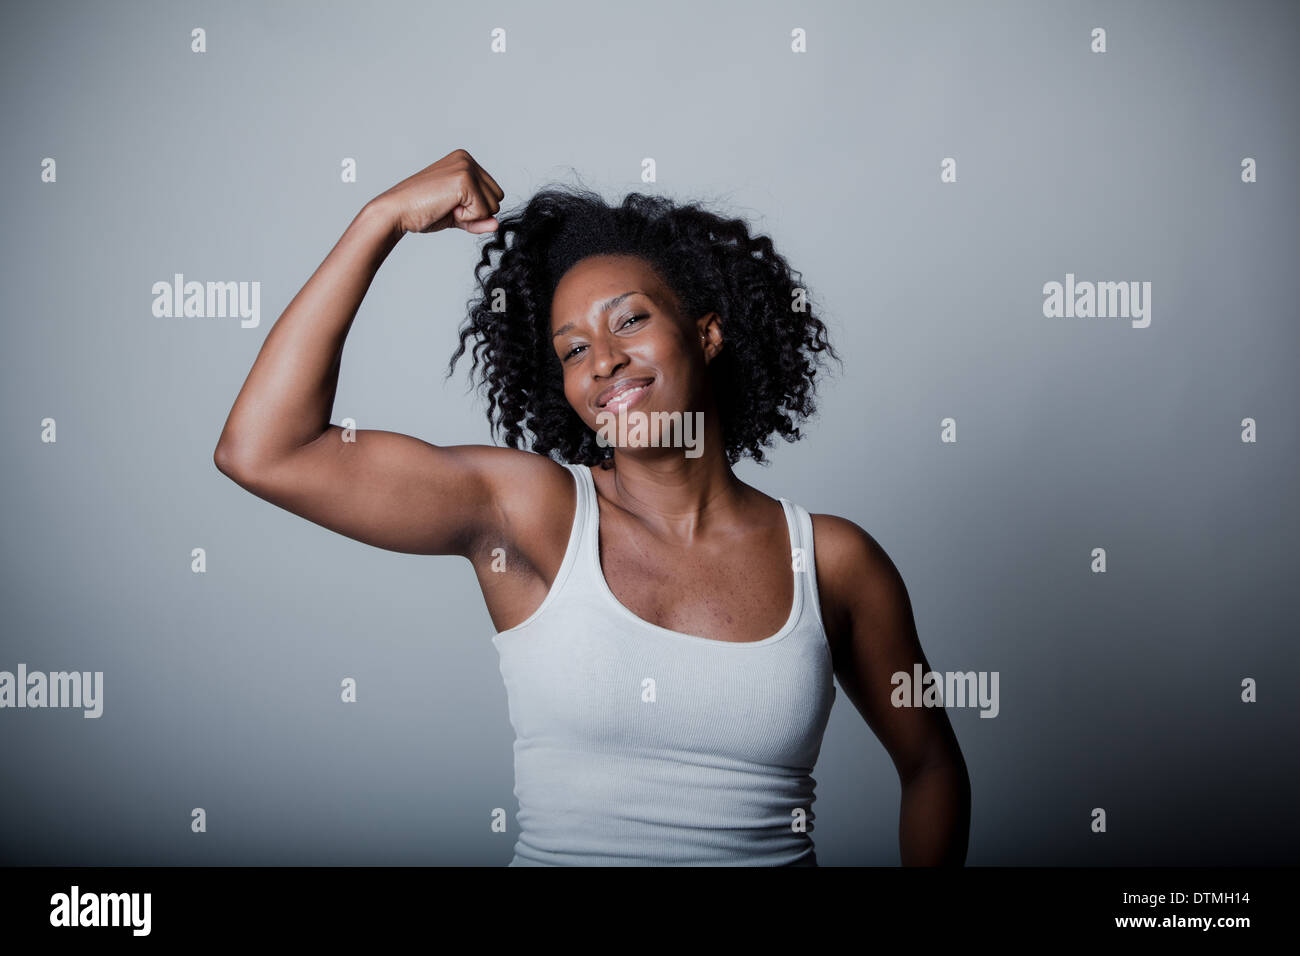 strong black woman in